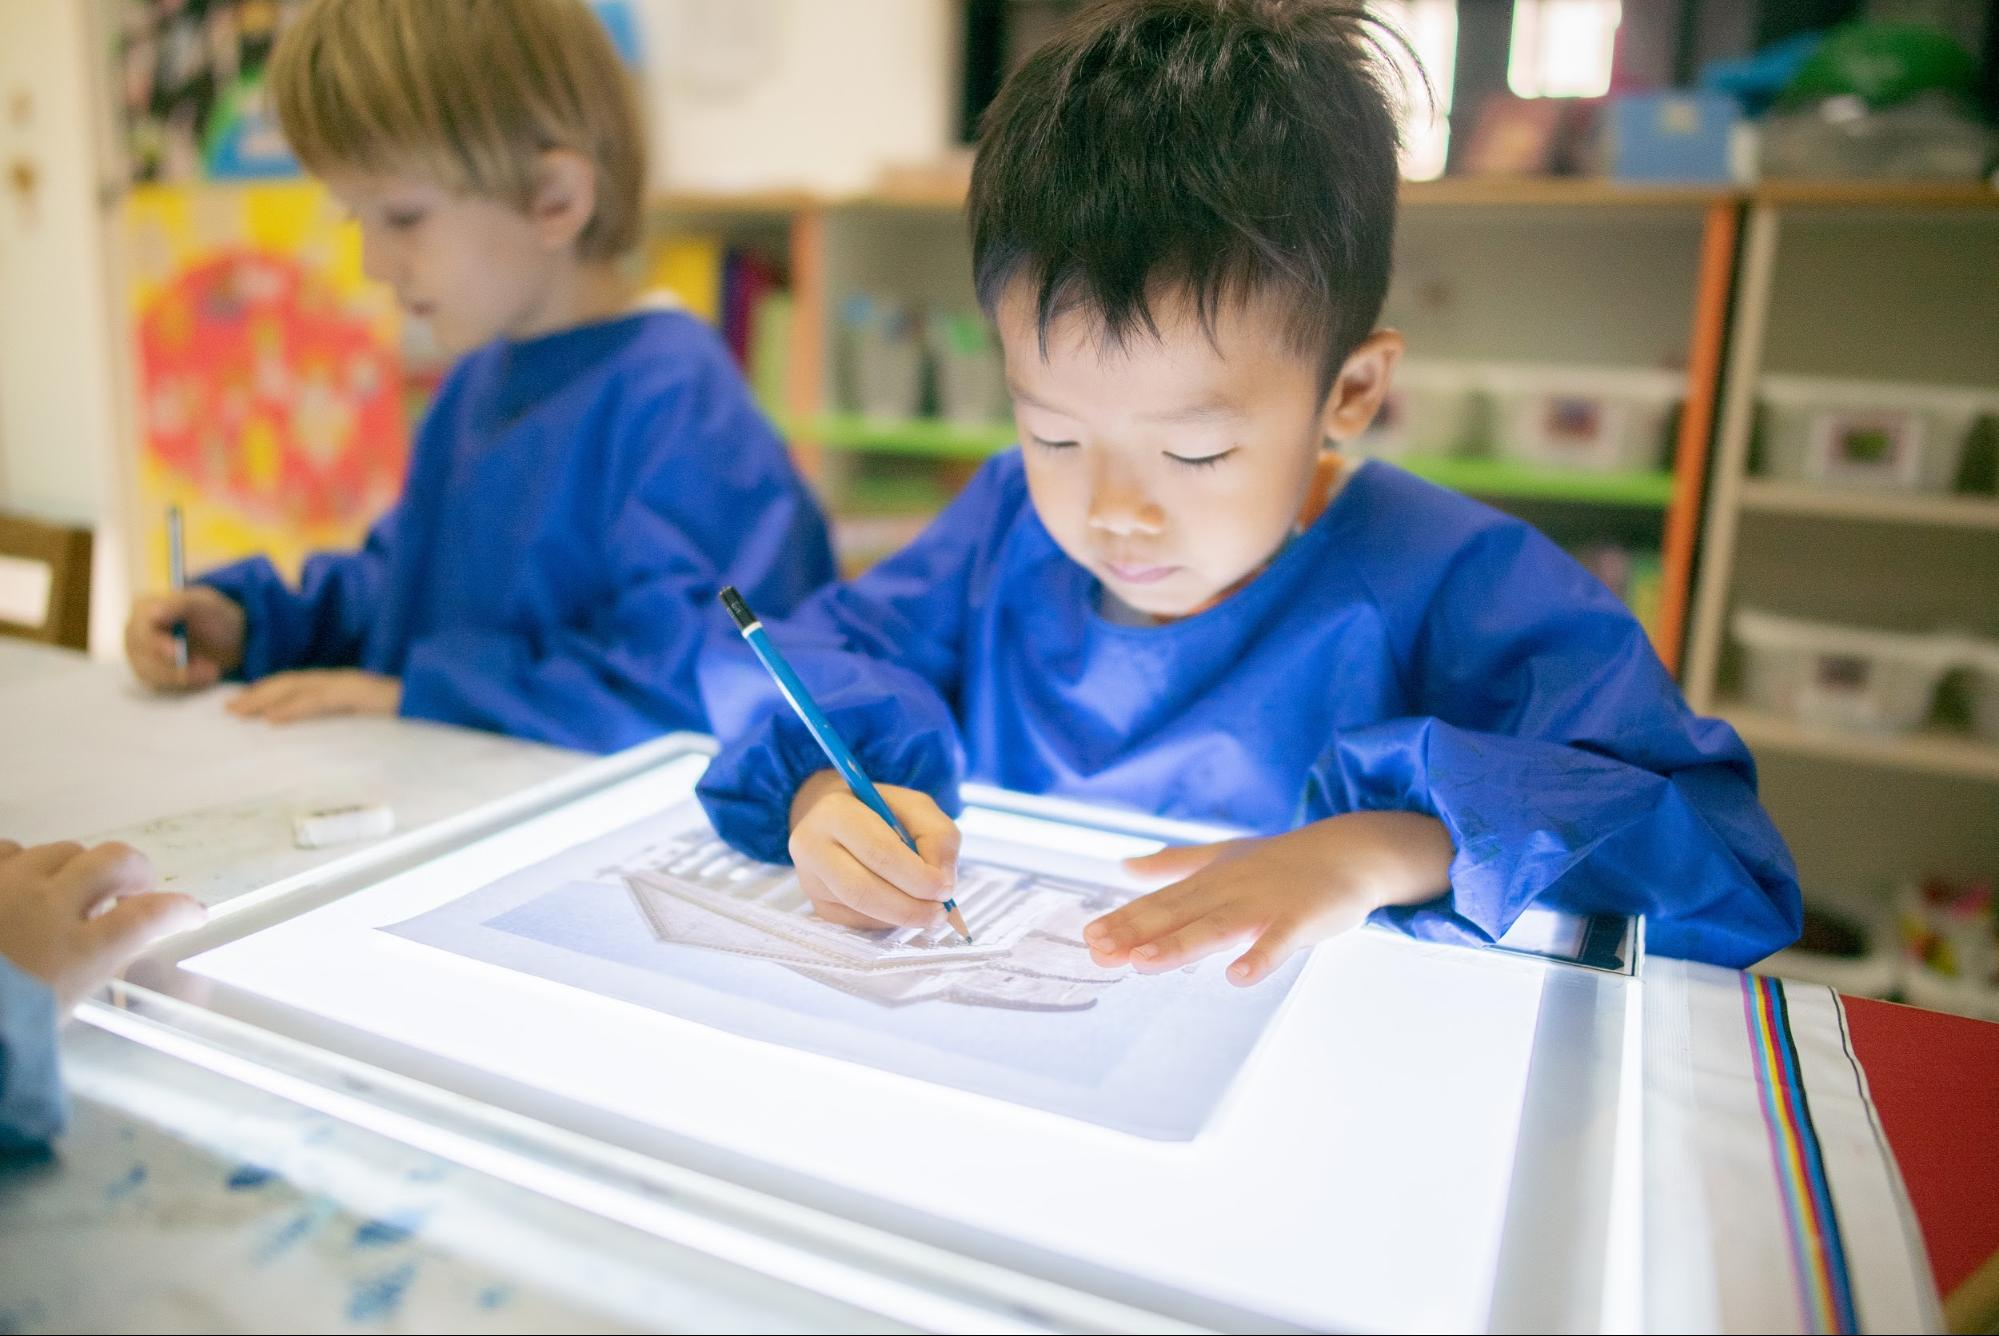 Preschool activities in Singapore (6)